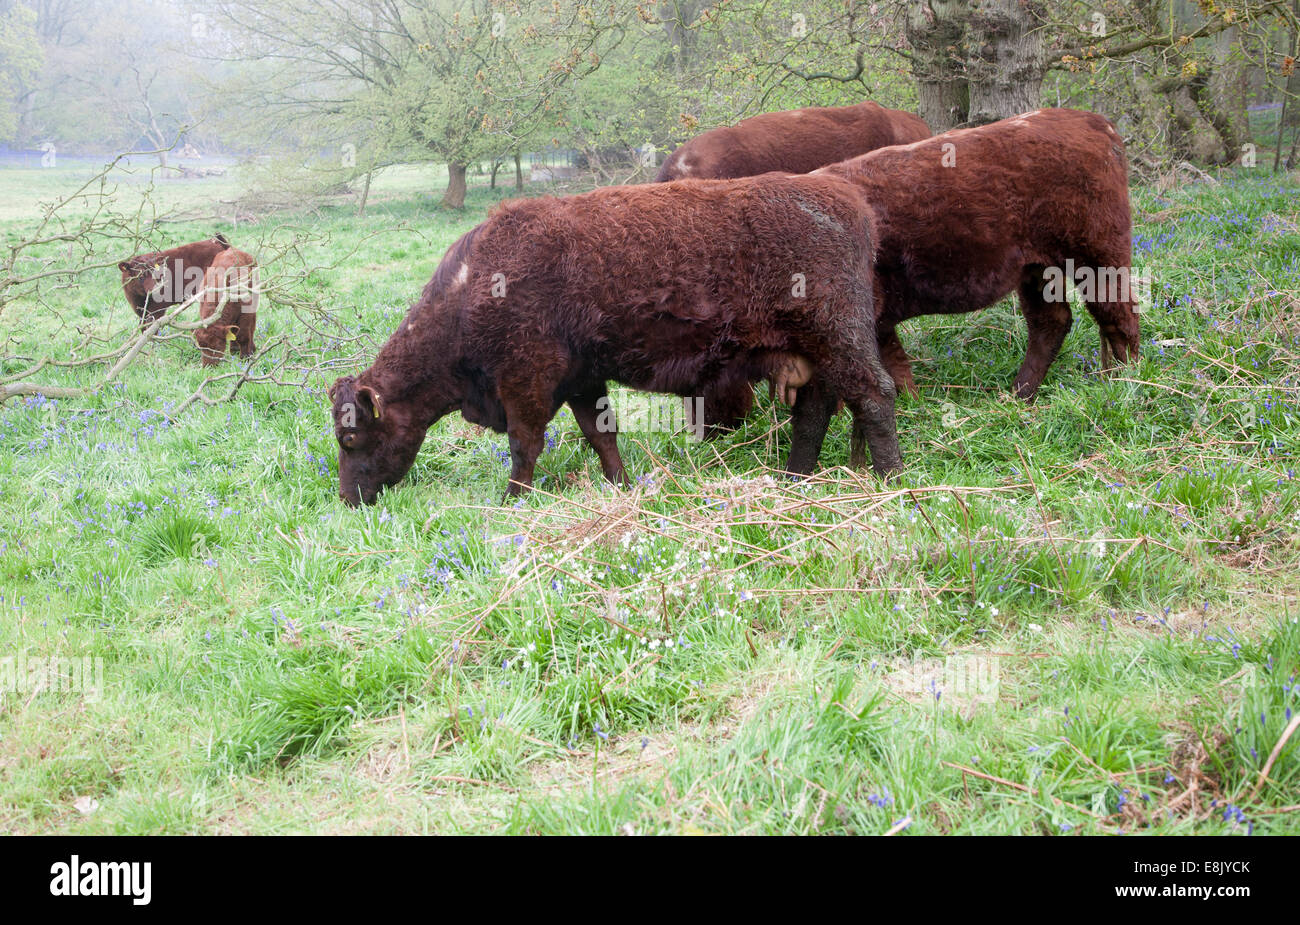 Red poll cattle grazing in a field near Sudbourne, Suffolk, England - Stock Image